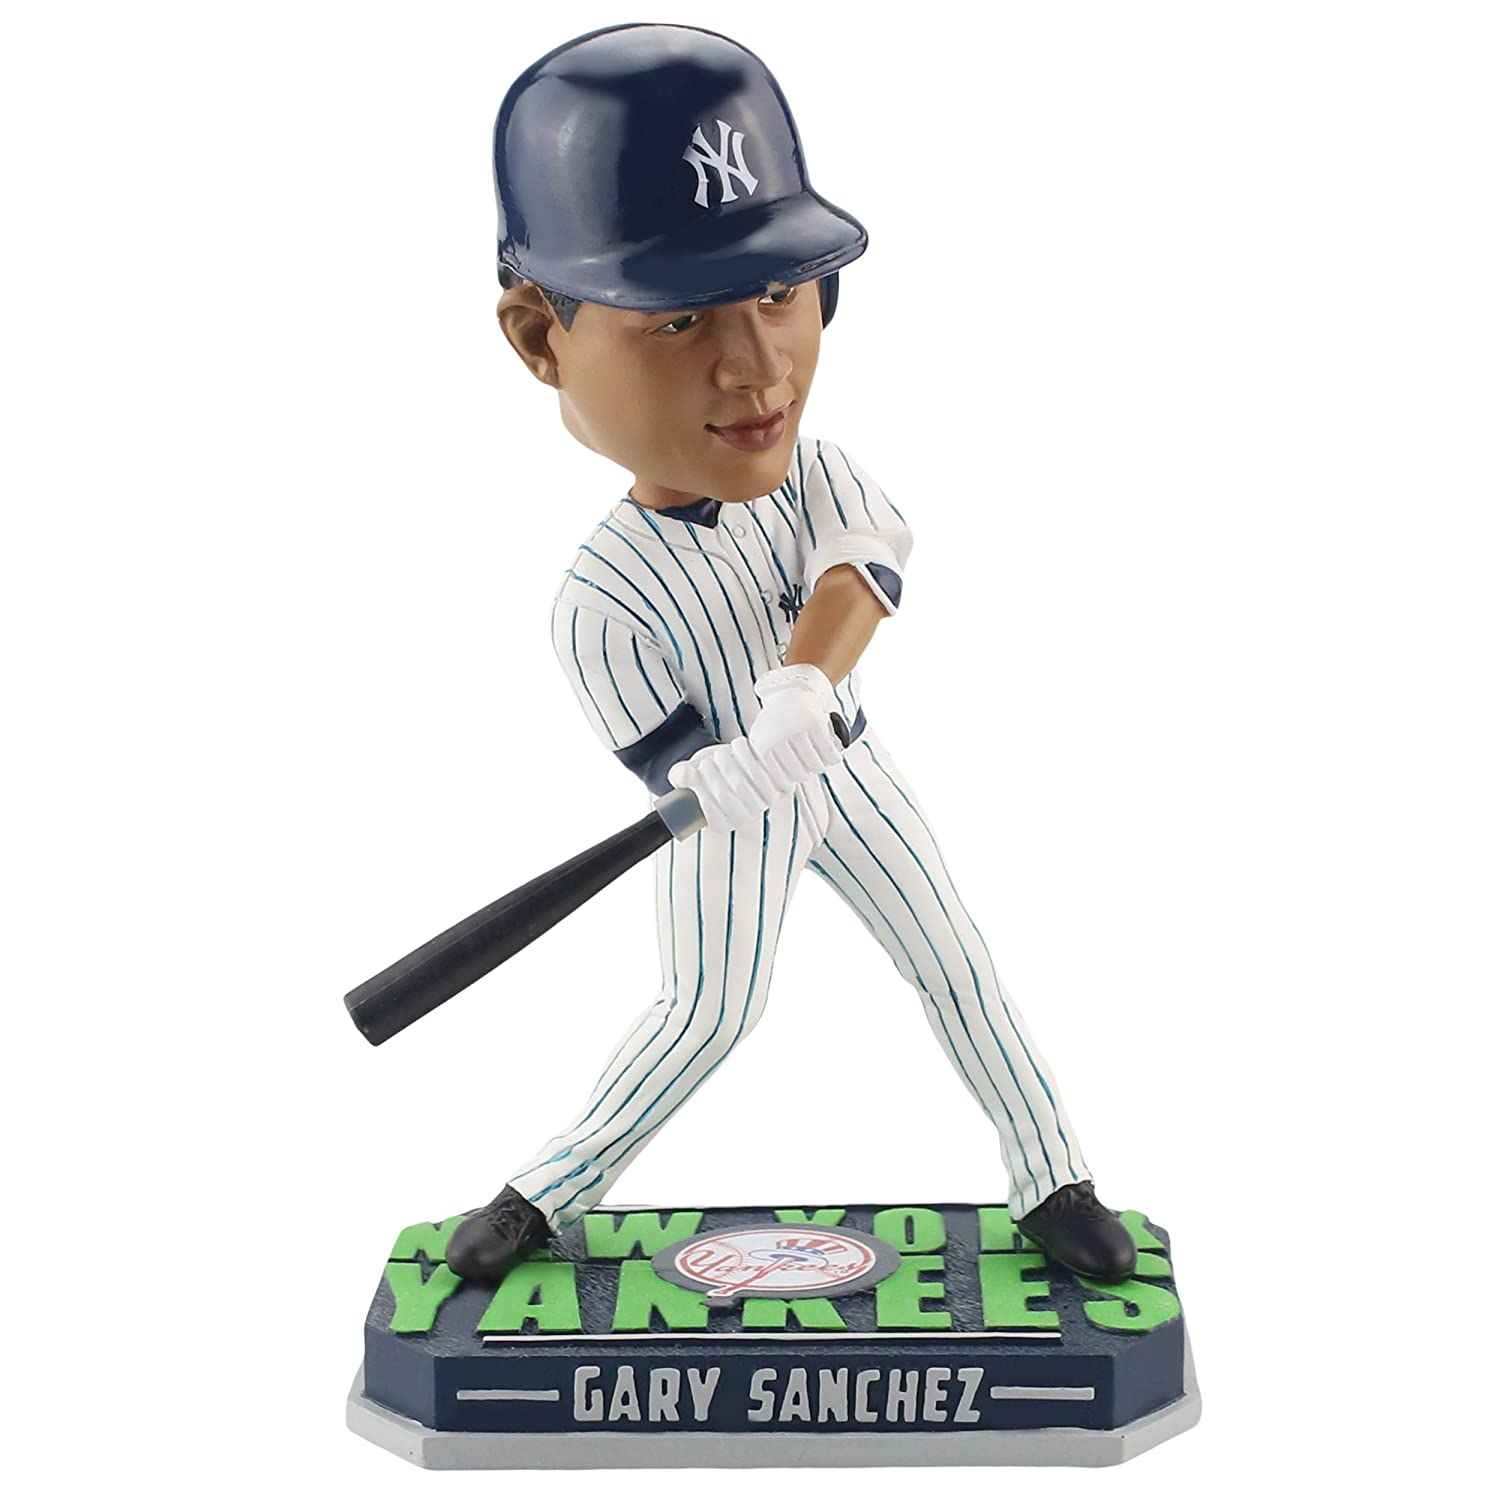 Gary Sanchez New York Yankees Glow in the Dark Special Edition Bobblehead MLB FOCO